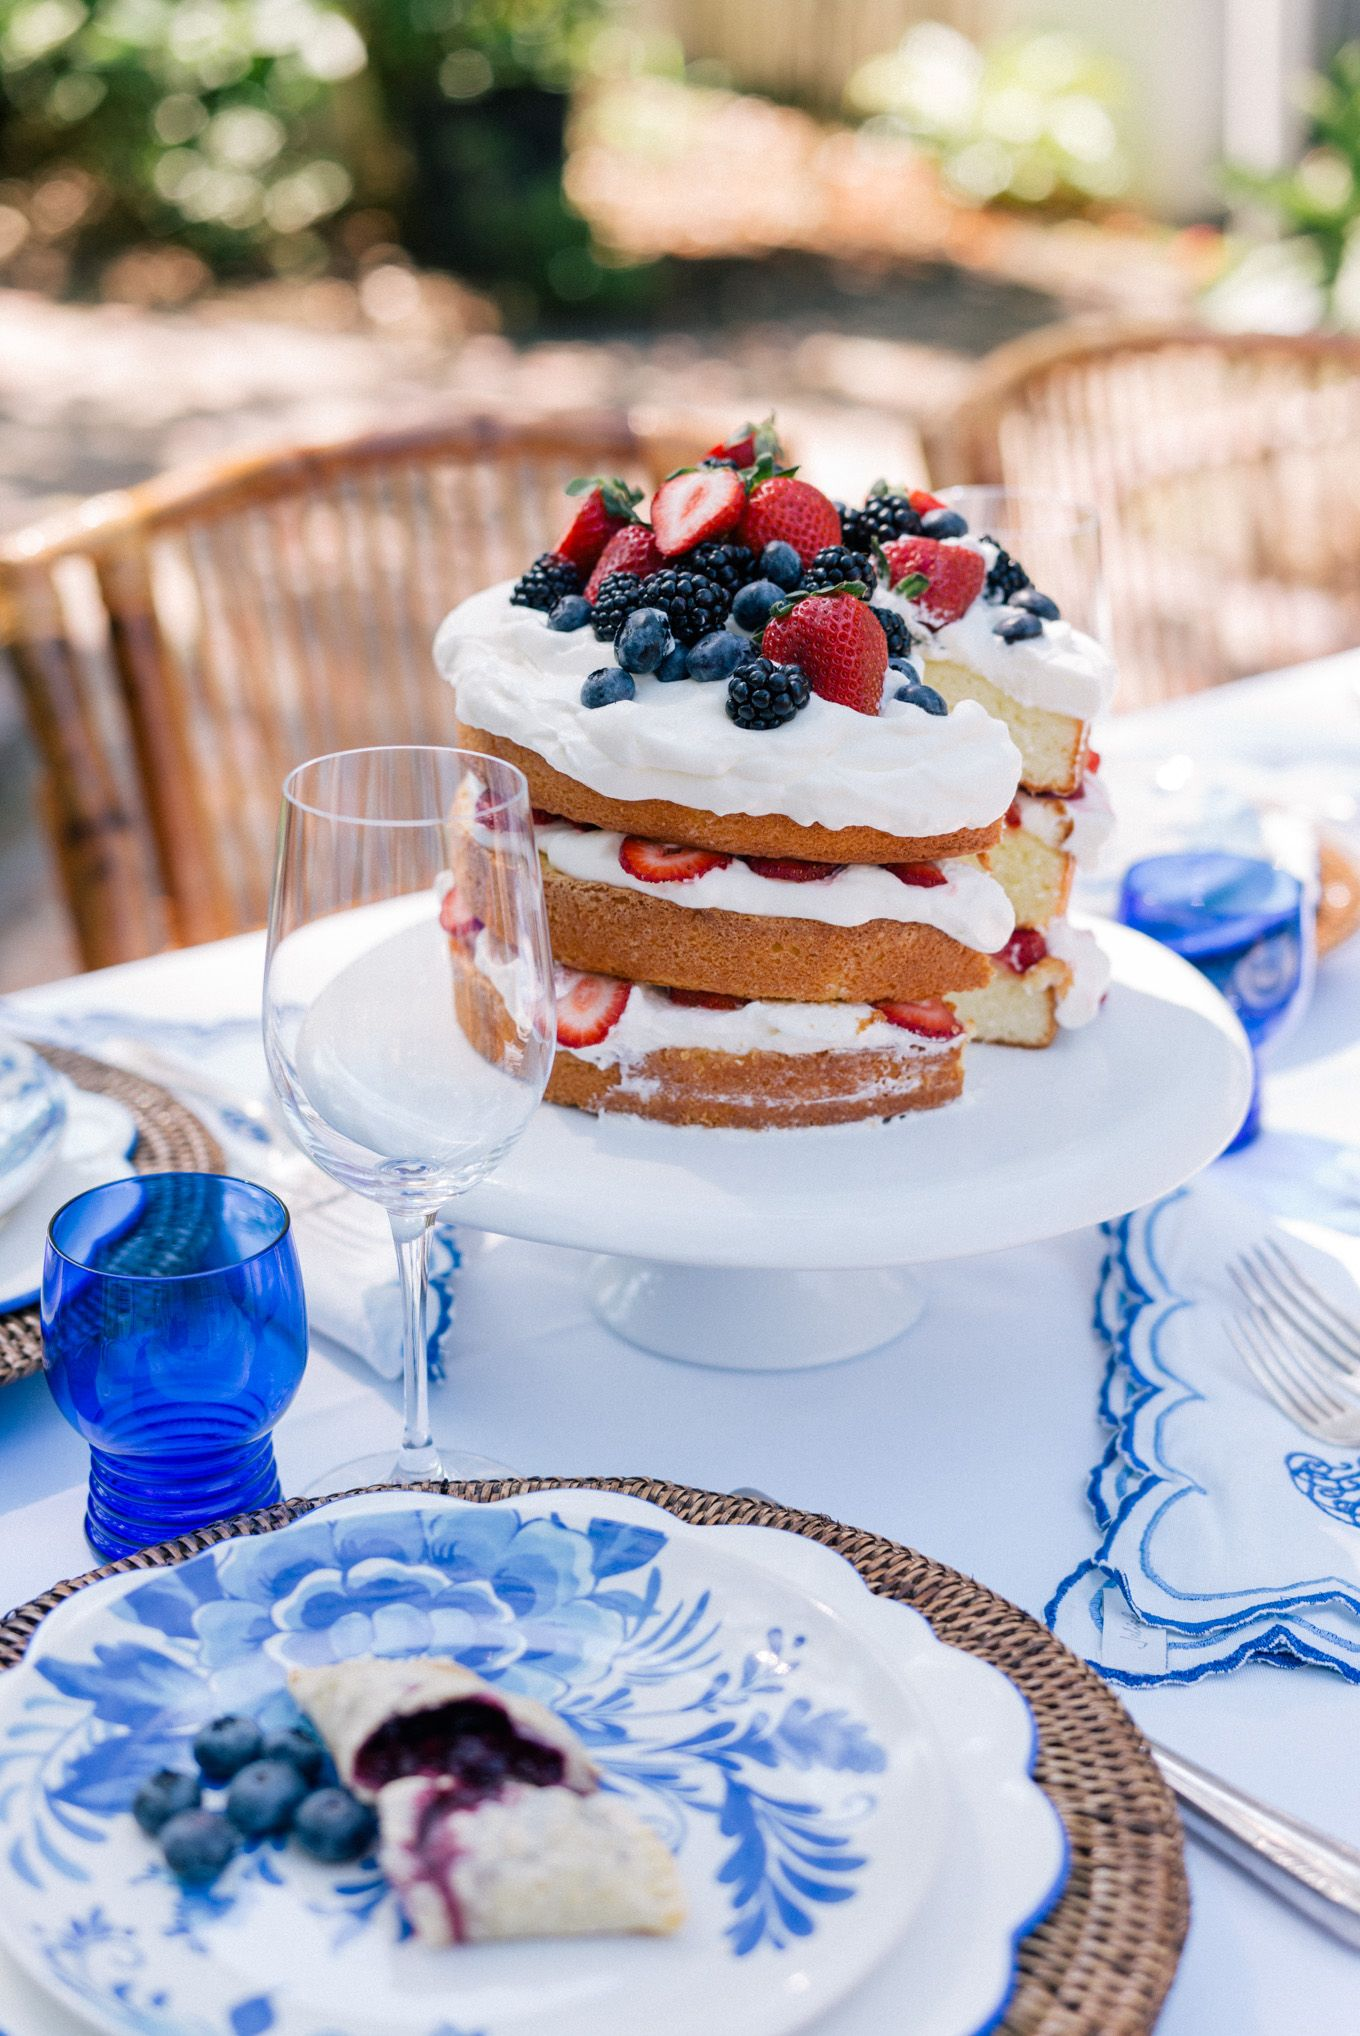 gmg-three-desserts-for-fourth-of-july-1009705